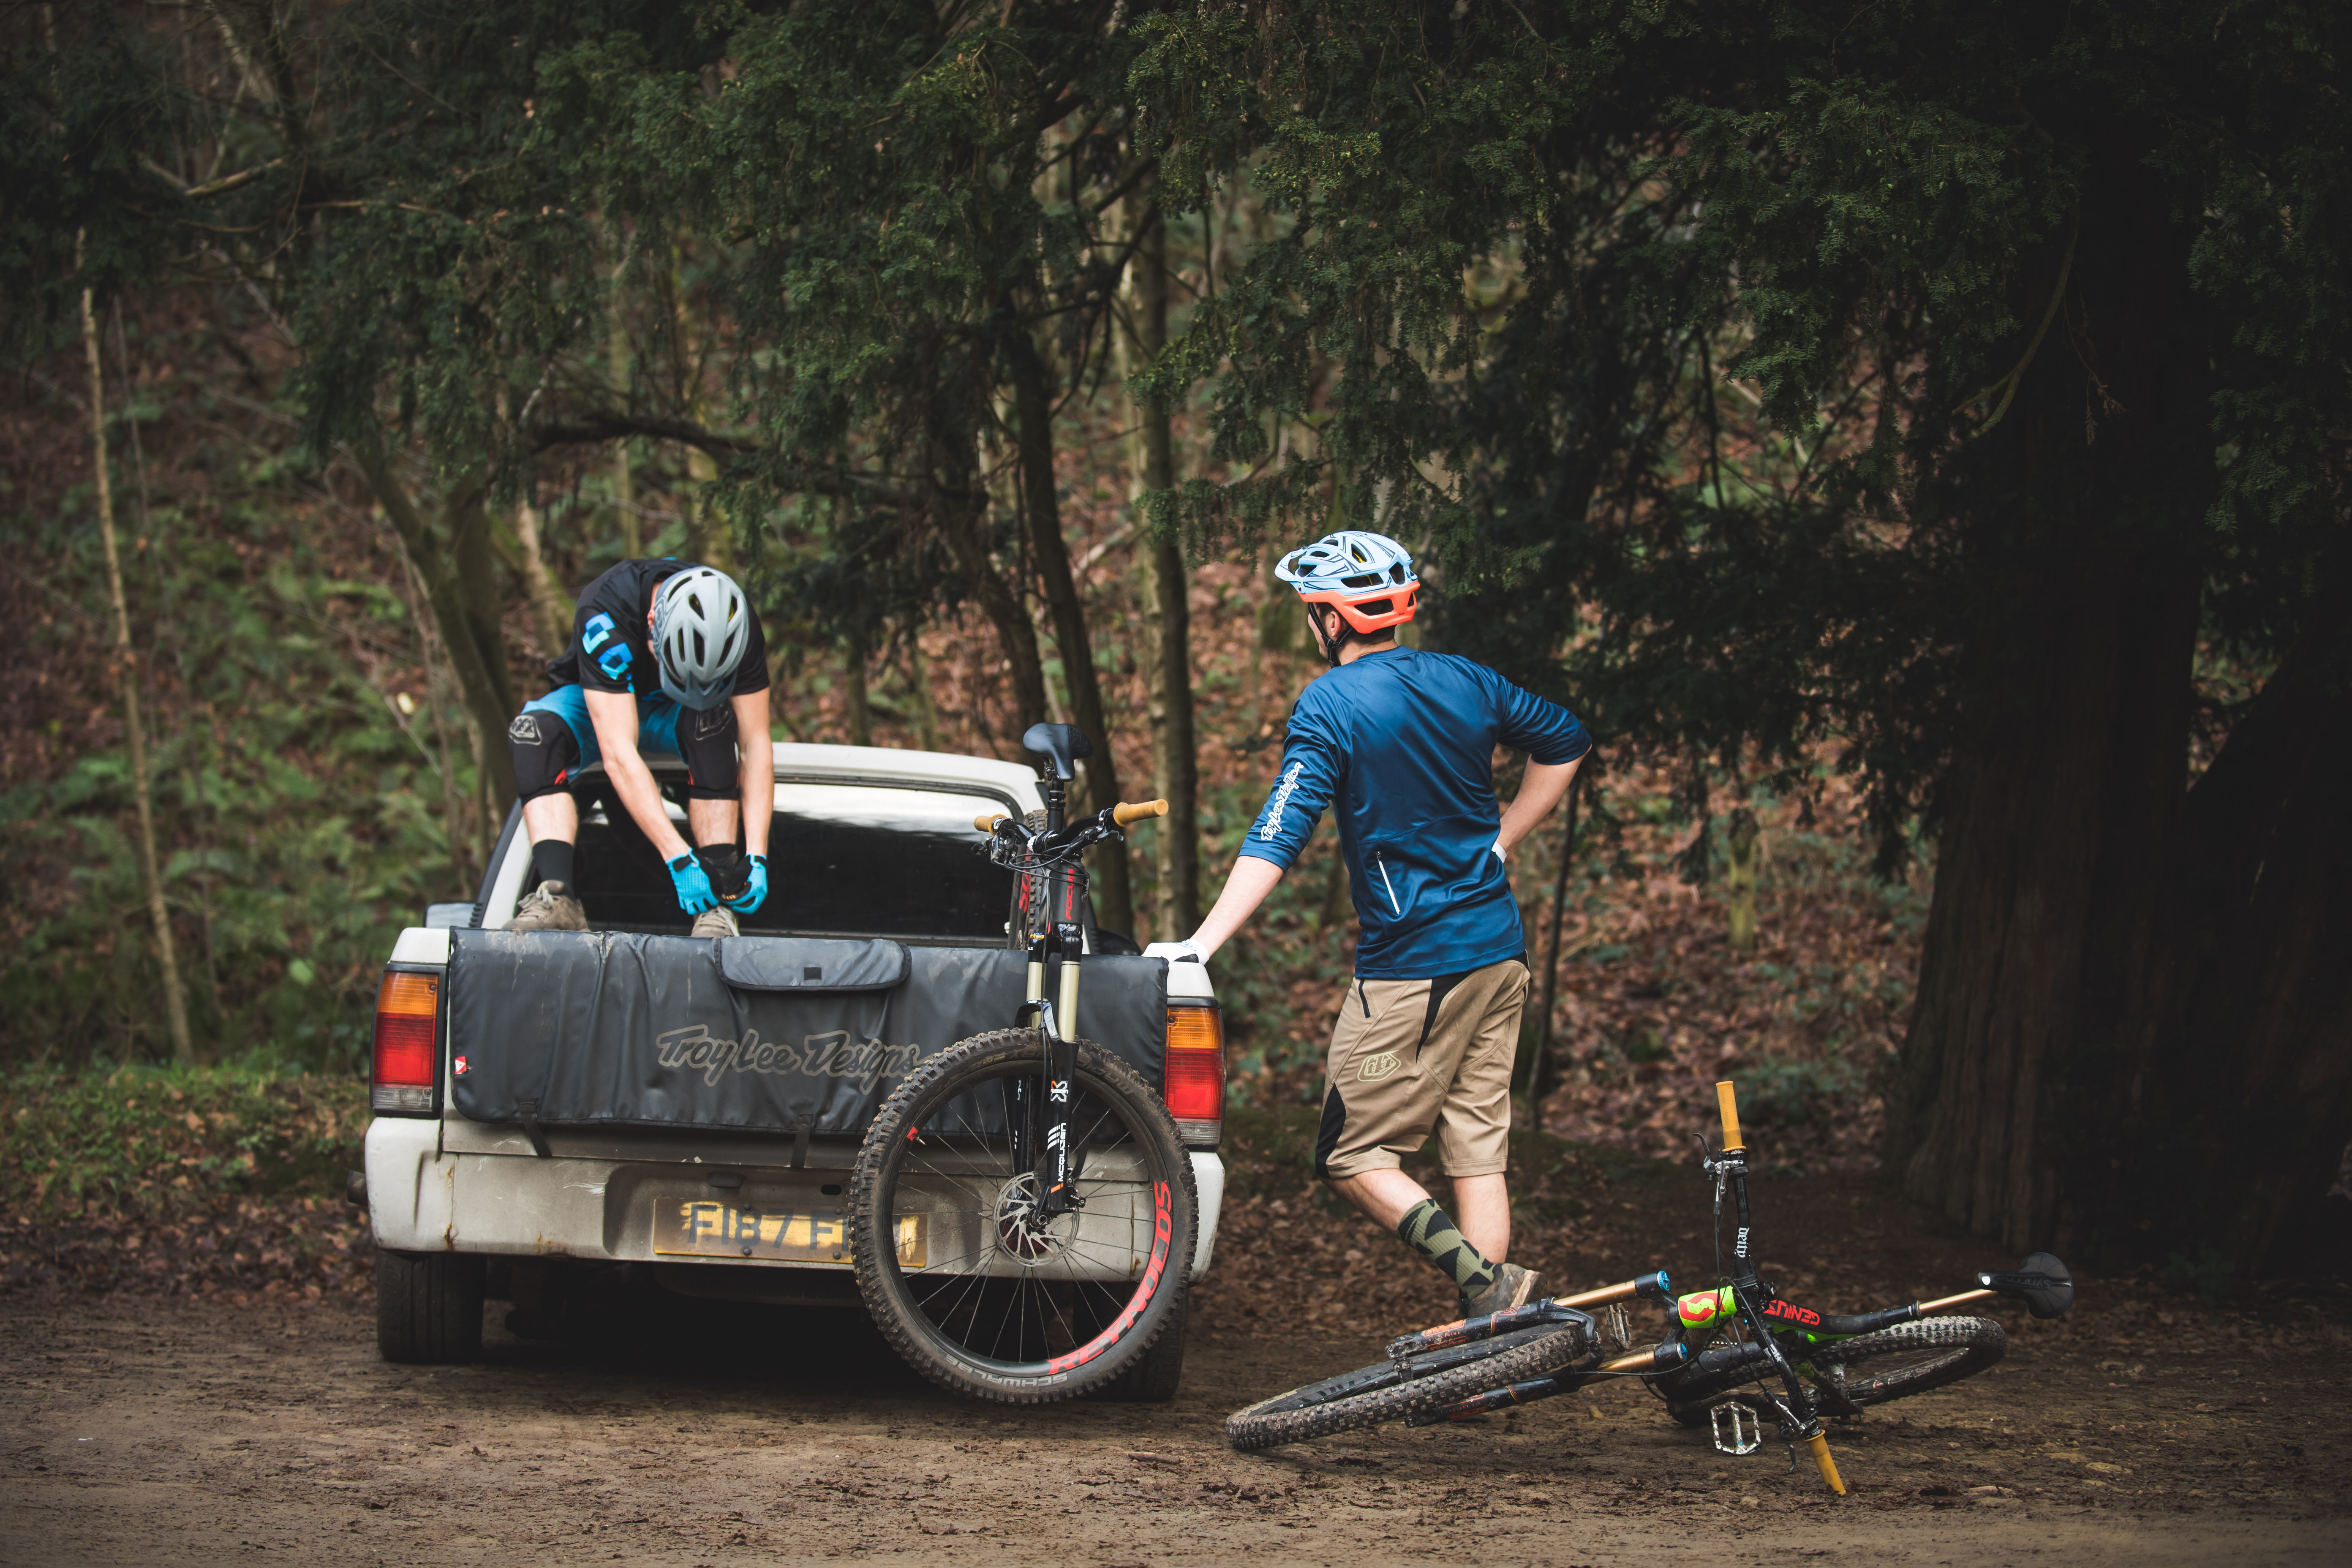 two mountain bikers and their mountain bikes getting ready for a ride next to a car